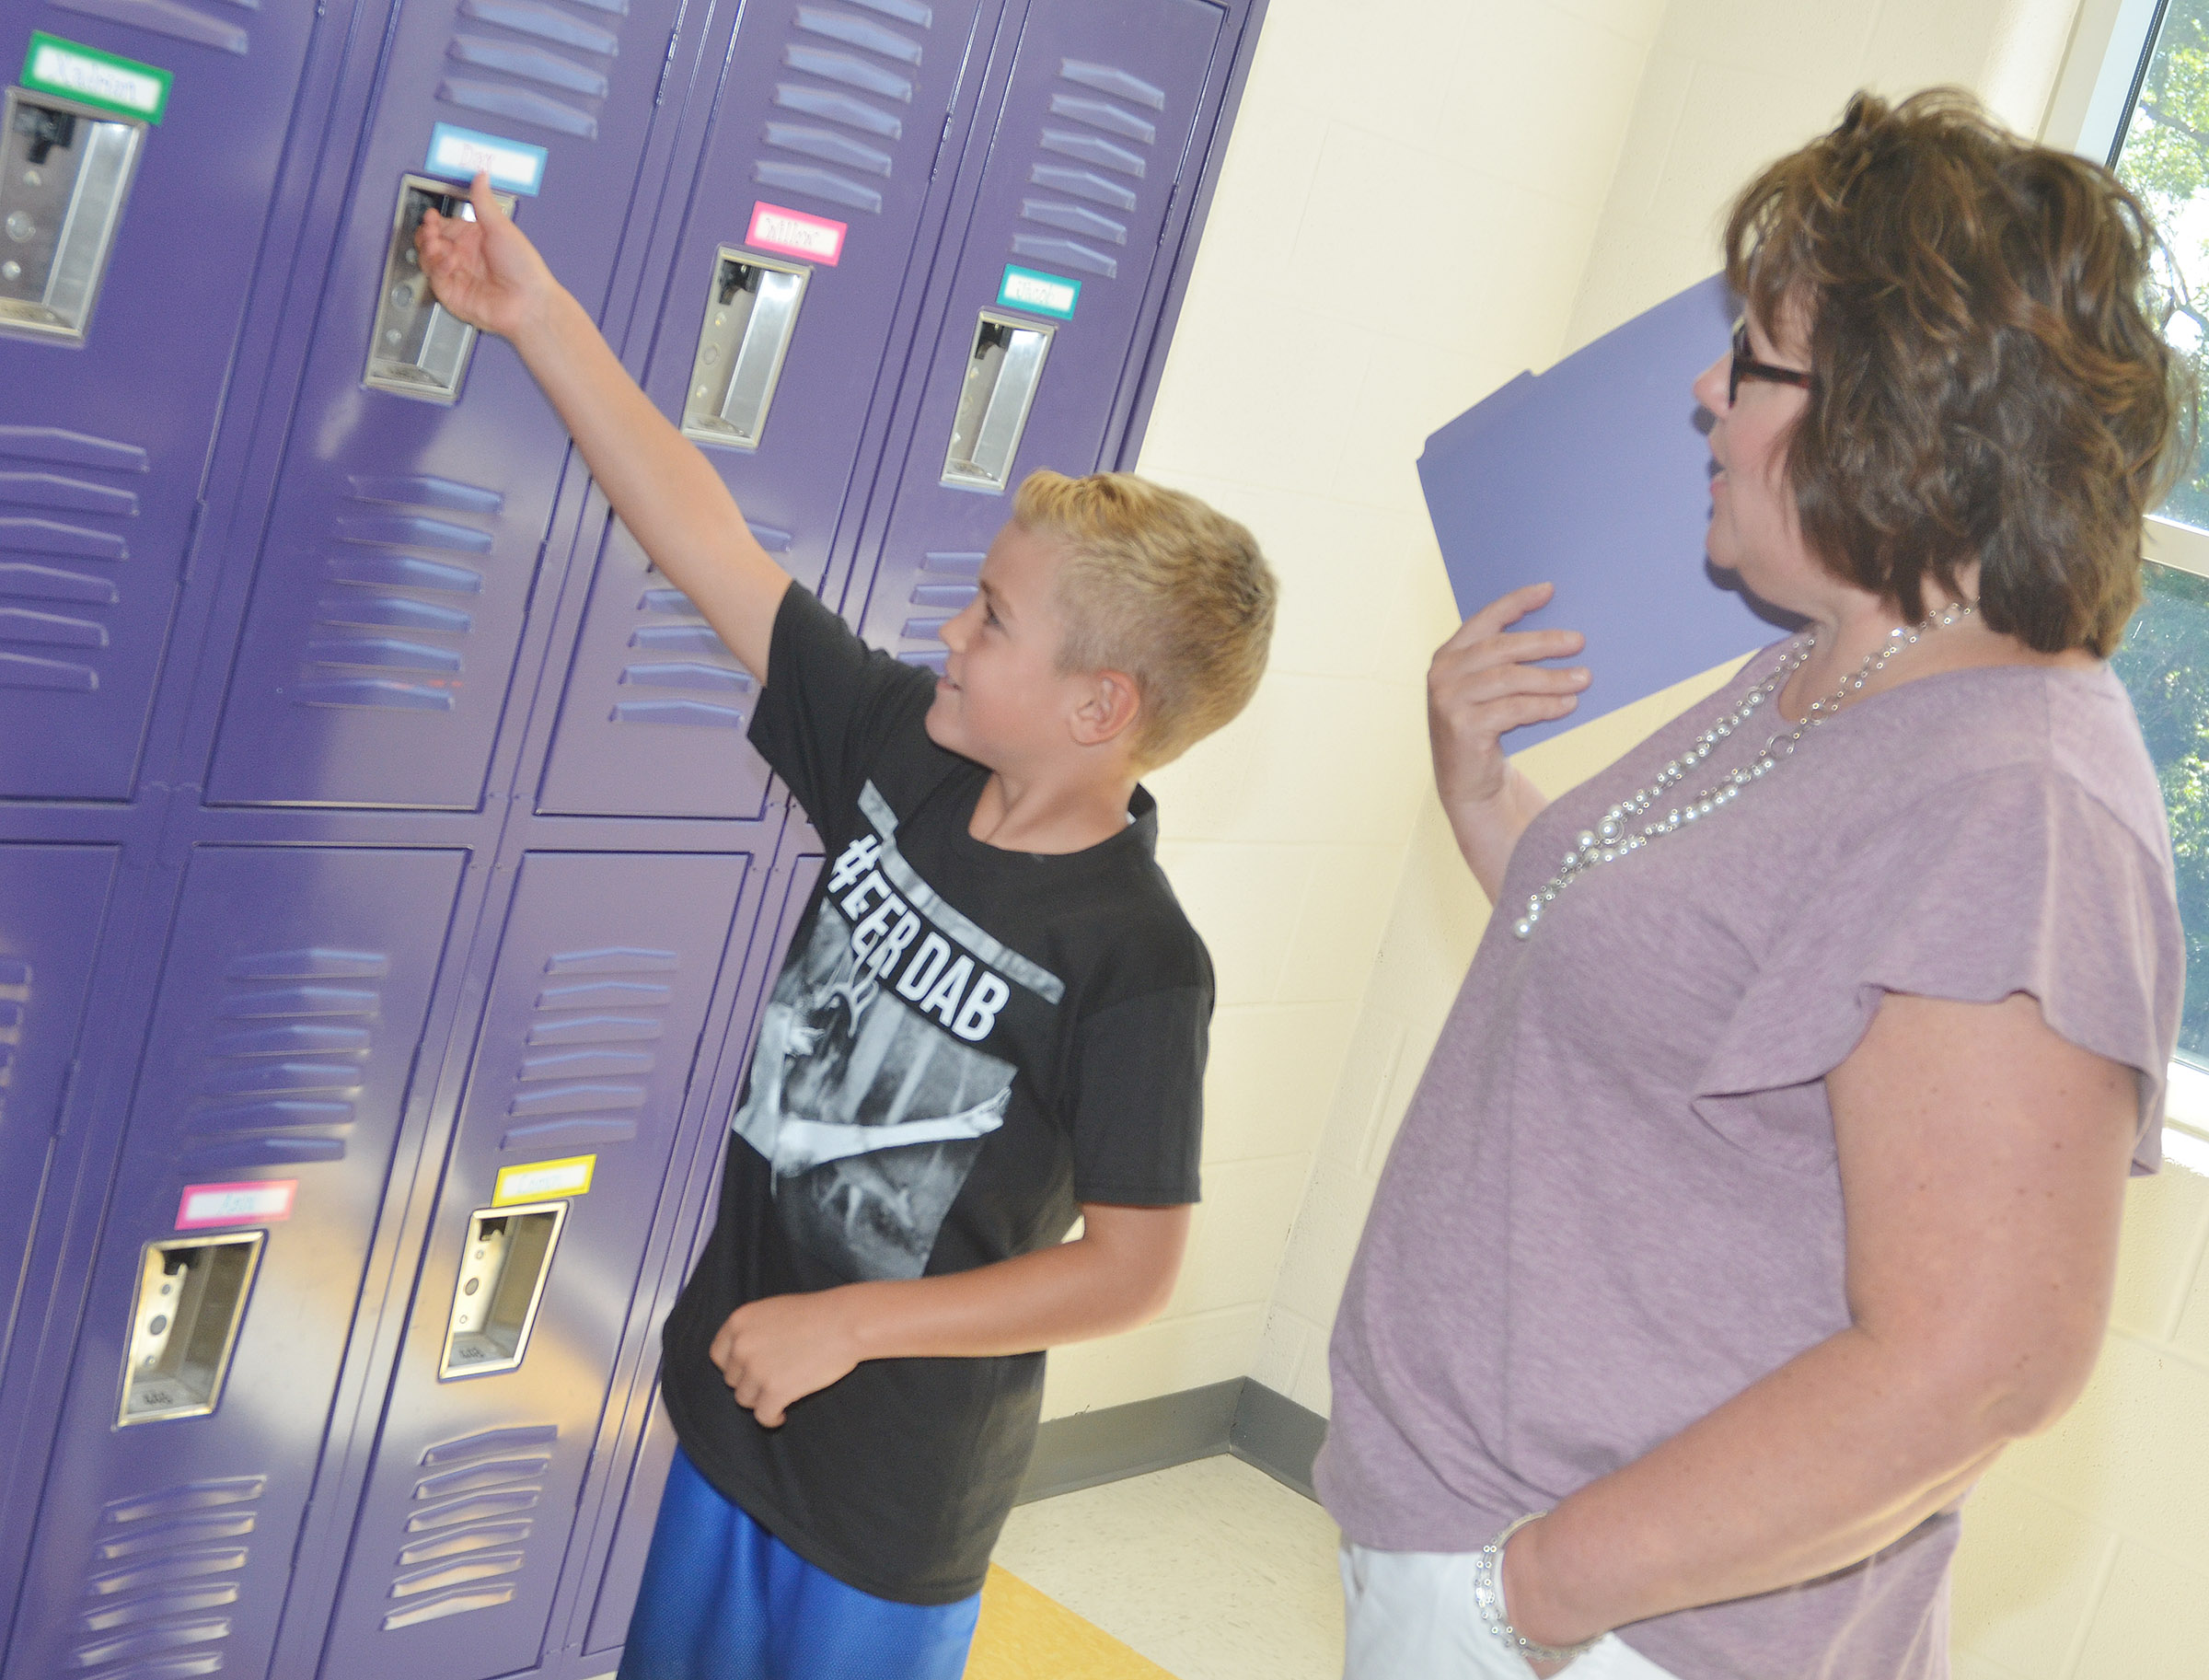 CES second-grade teacher Tracey Rinehart helps student Dax Gray find his locker.